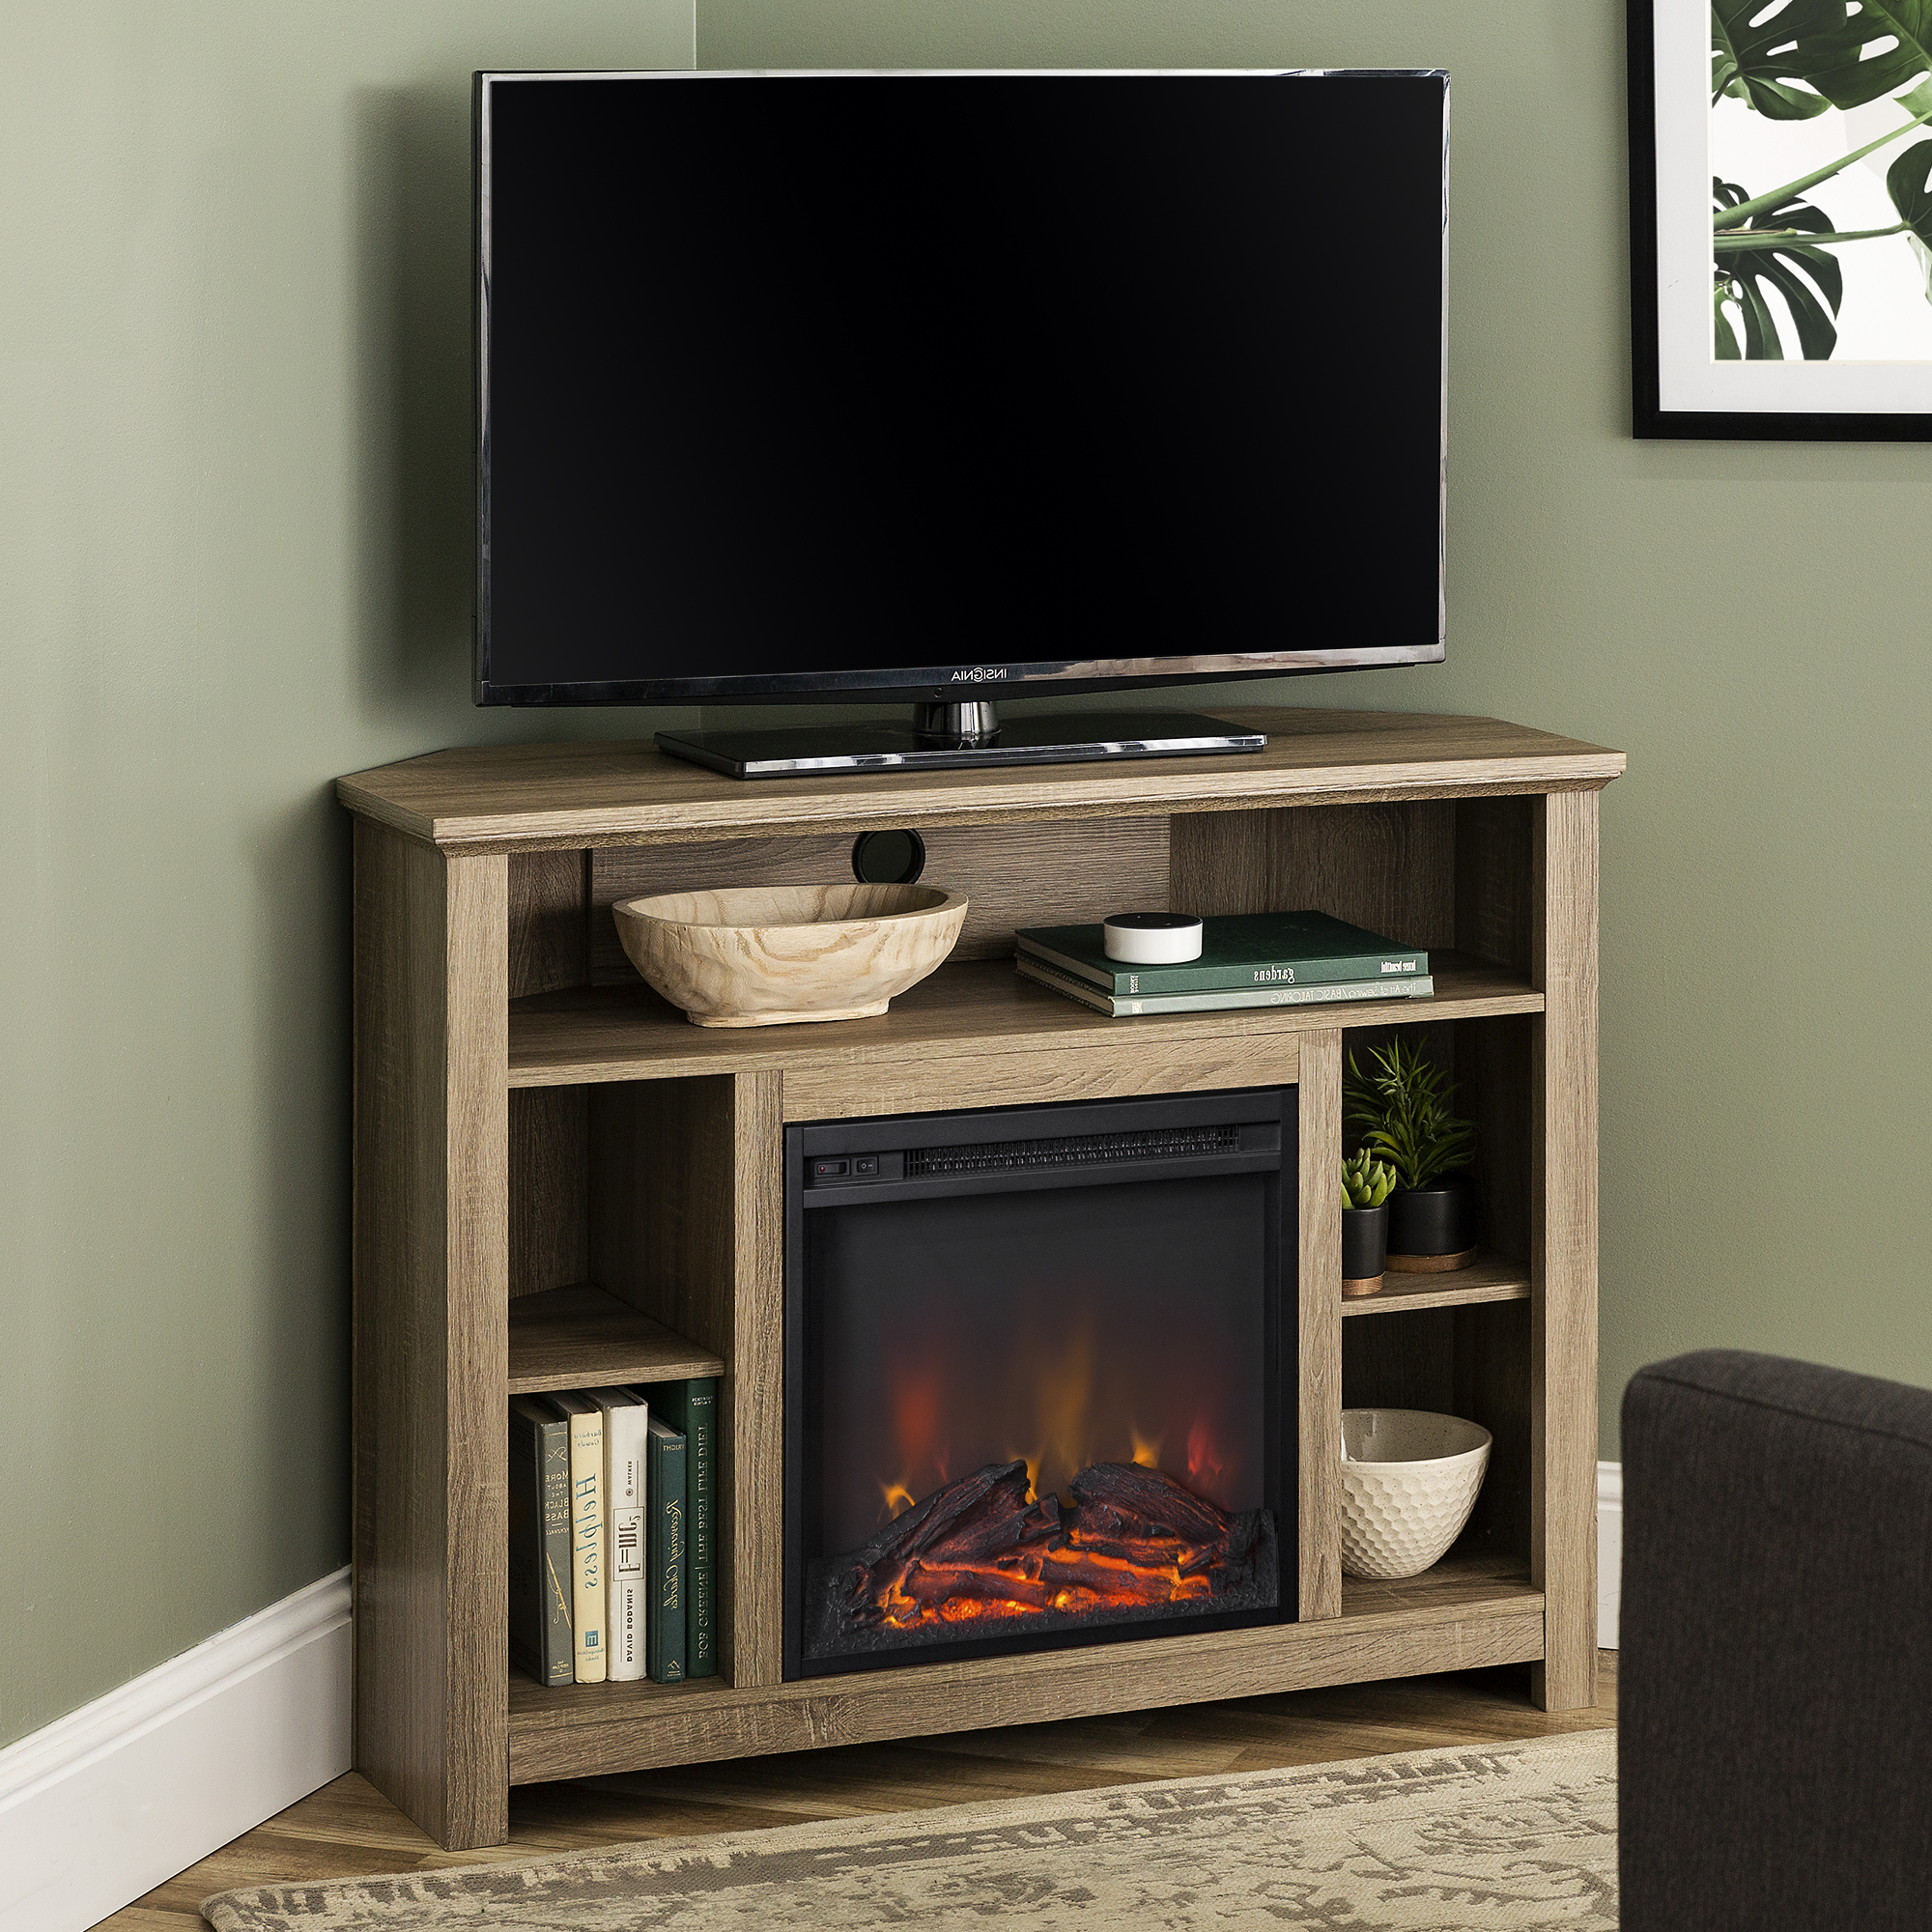 """Manor Park Tall Corner Fireplace Tv Stand For Tvs Up To 50 Regarding Allegra Tv Stands For Tvs Up To 50"""" (View 4 of 20)"""